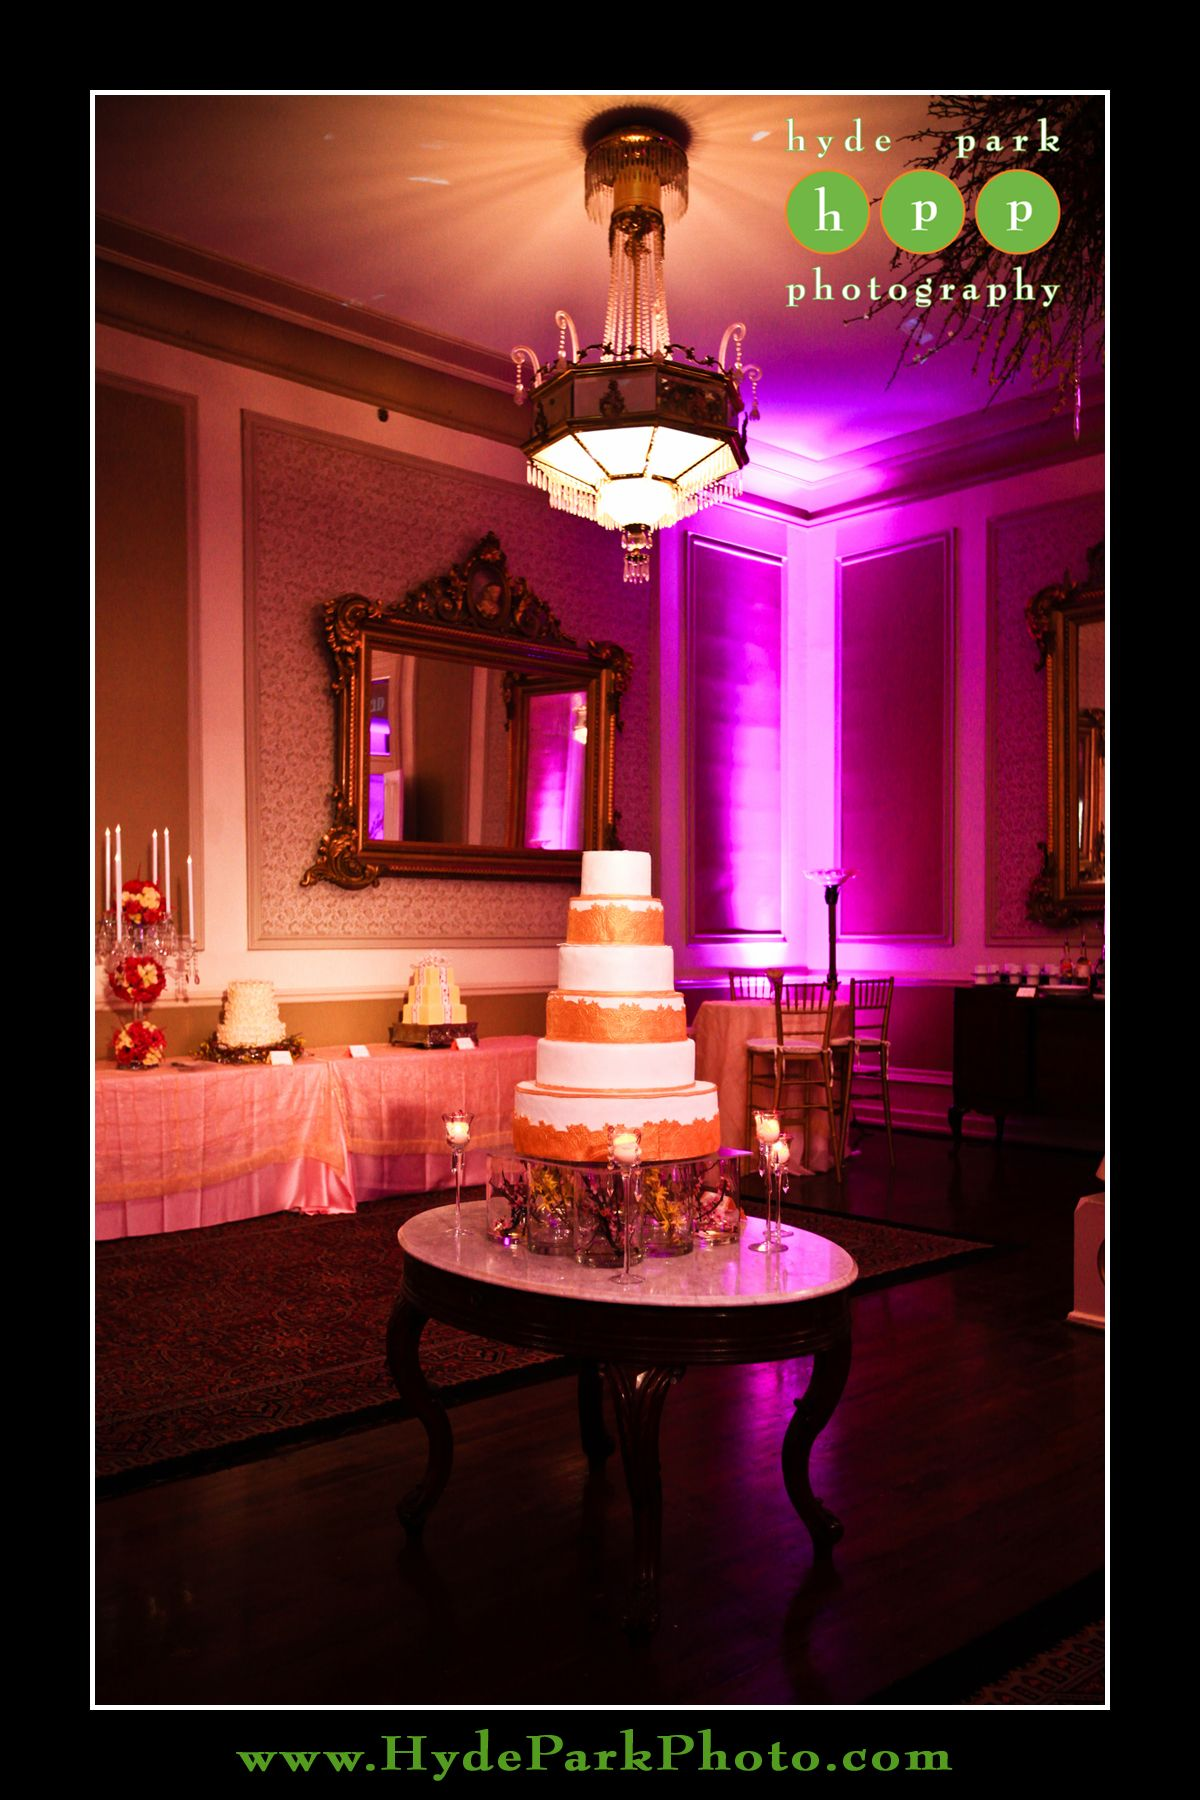 Pin by Hyde Park Photography on Wedding Cakes Austin